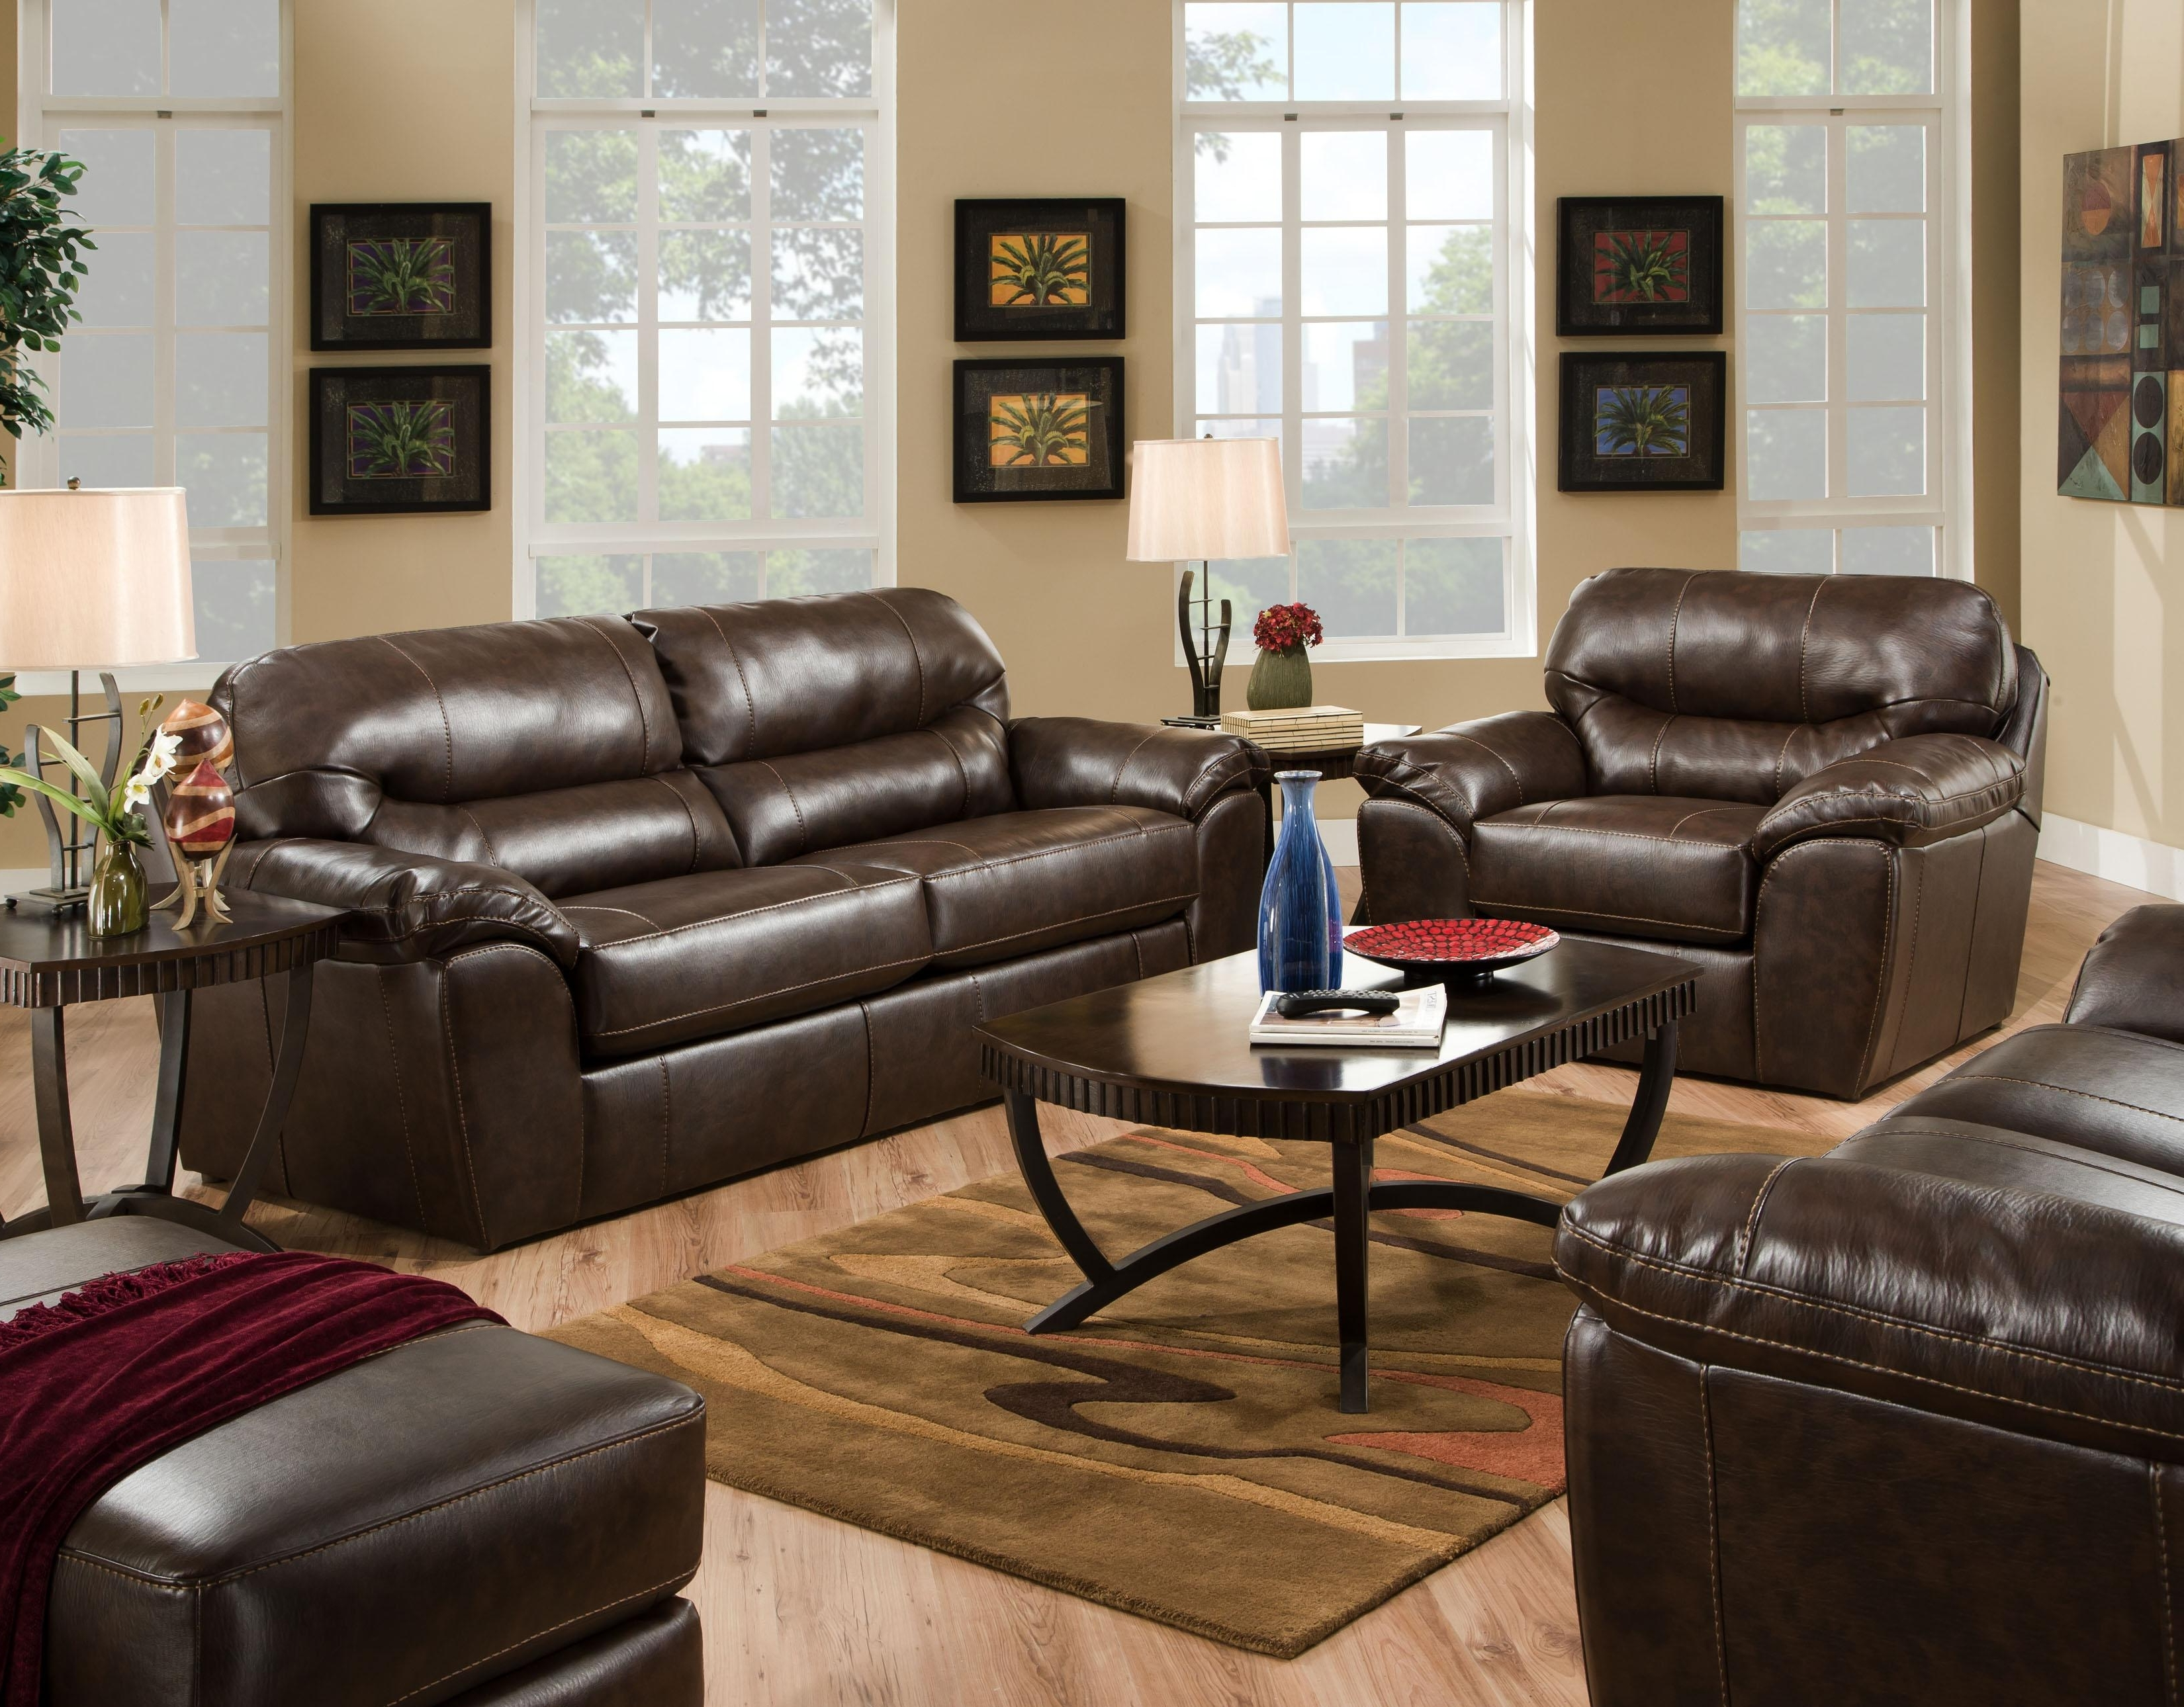 Casual And Comfortable Faux Leather Sofajackson Furniture Regarding Most Current Comfortable Sofas And Chairs (View 2 of 20)